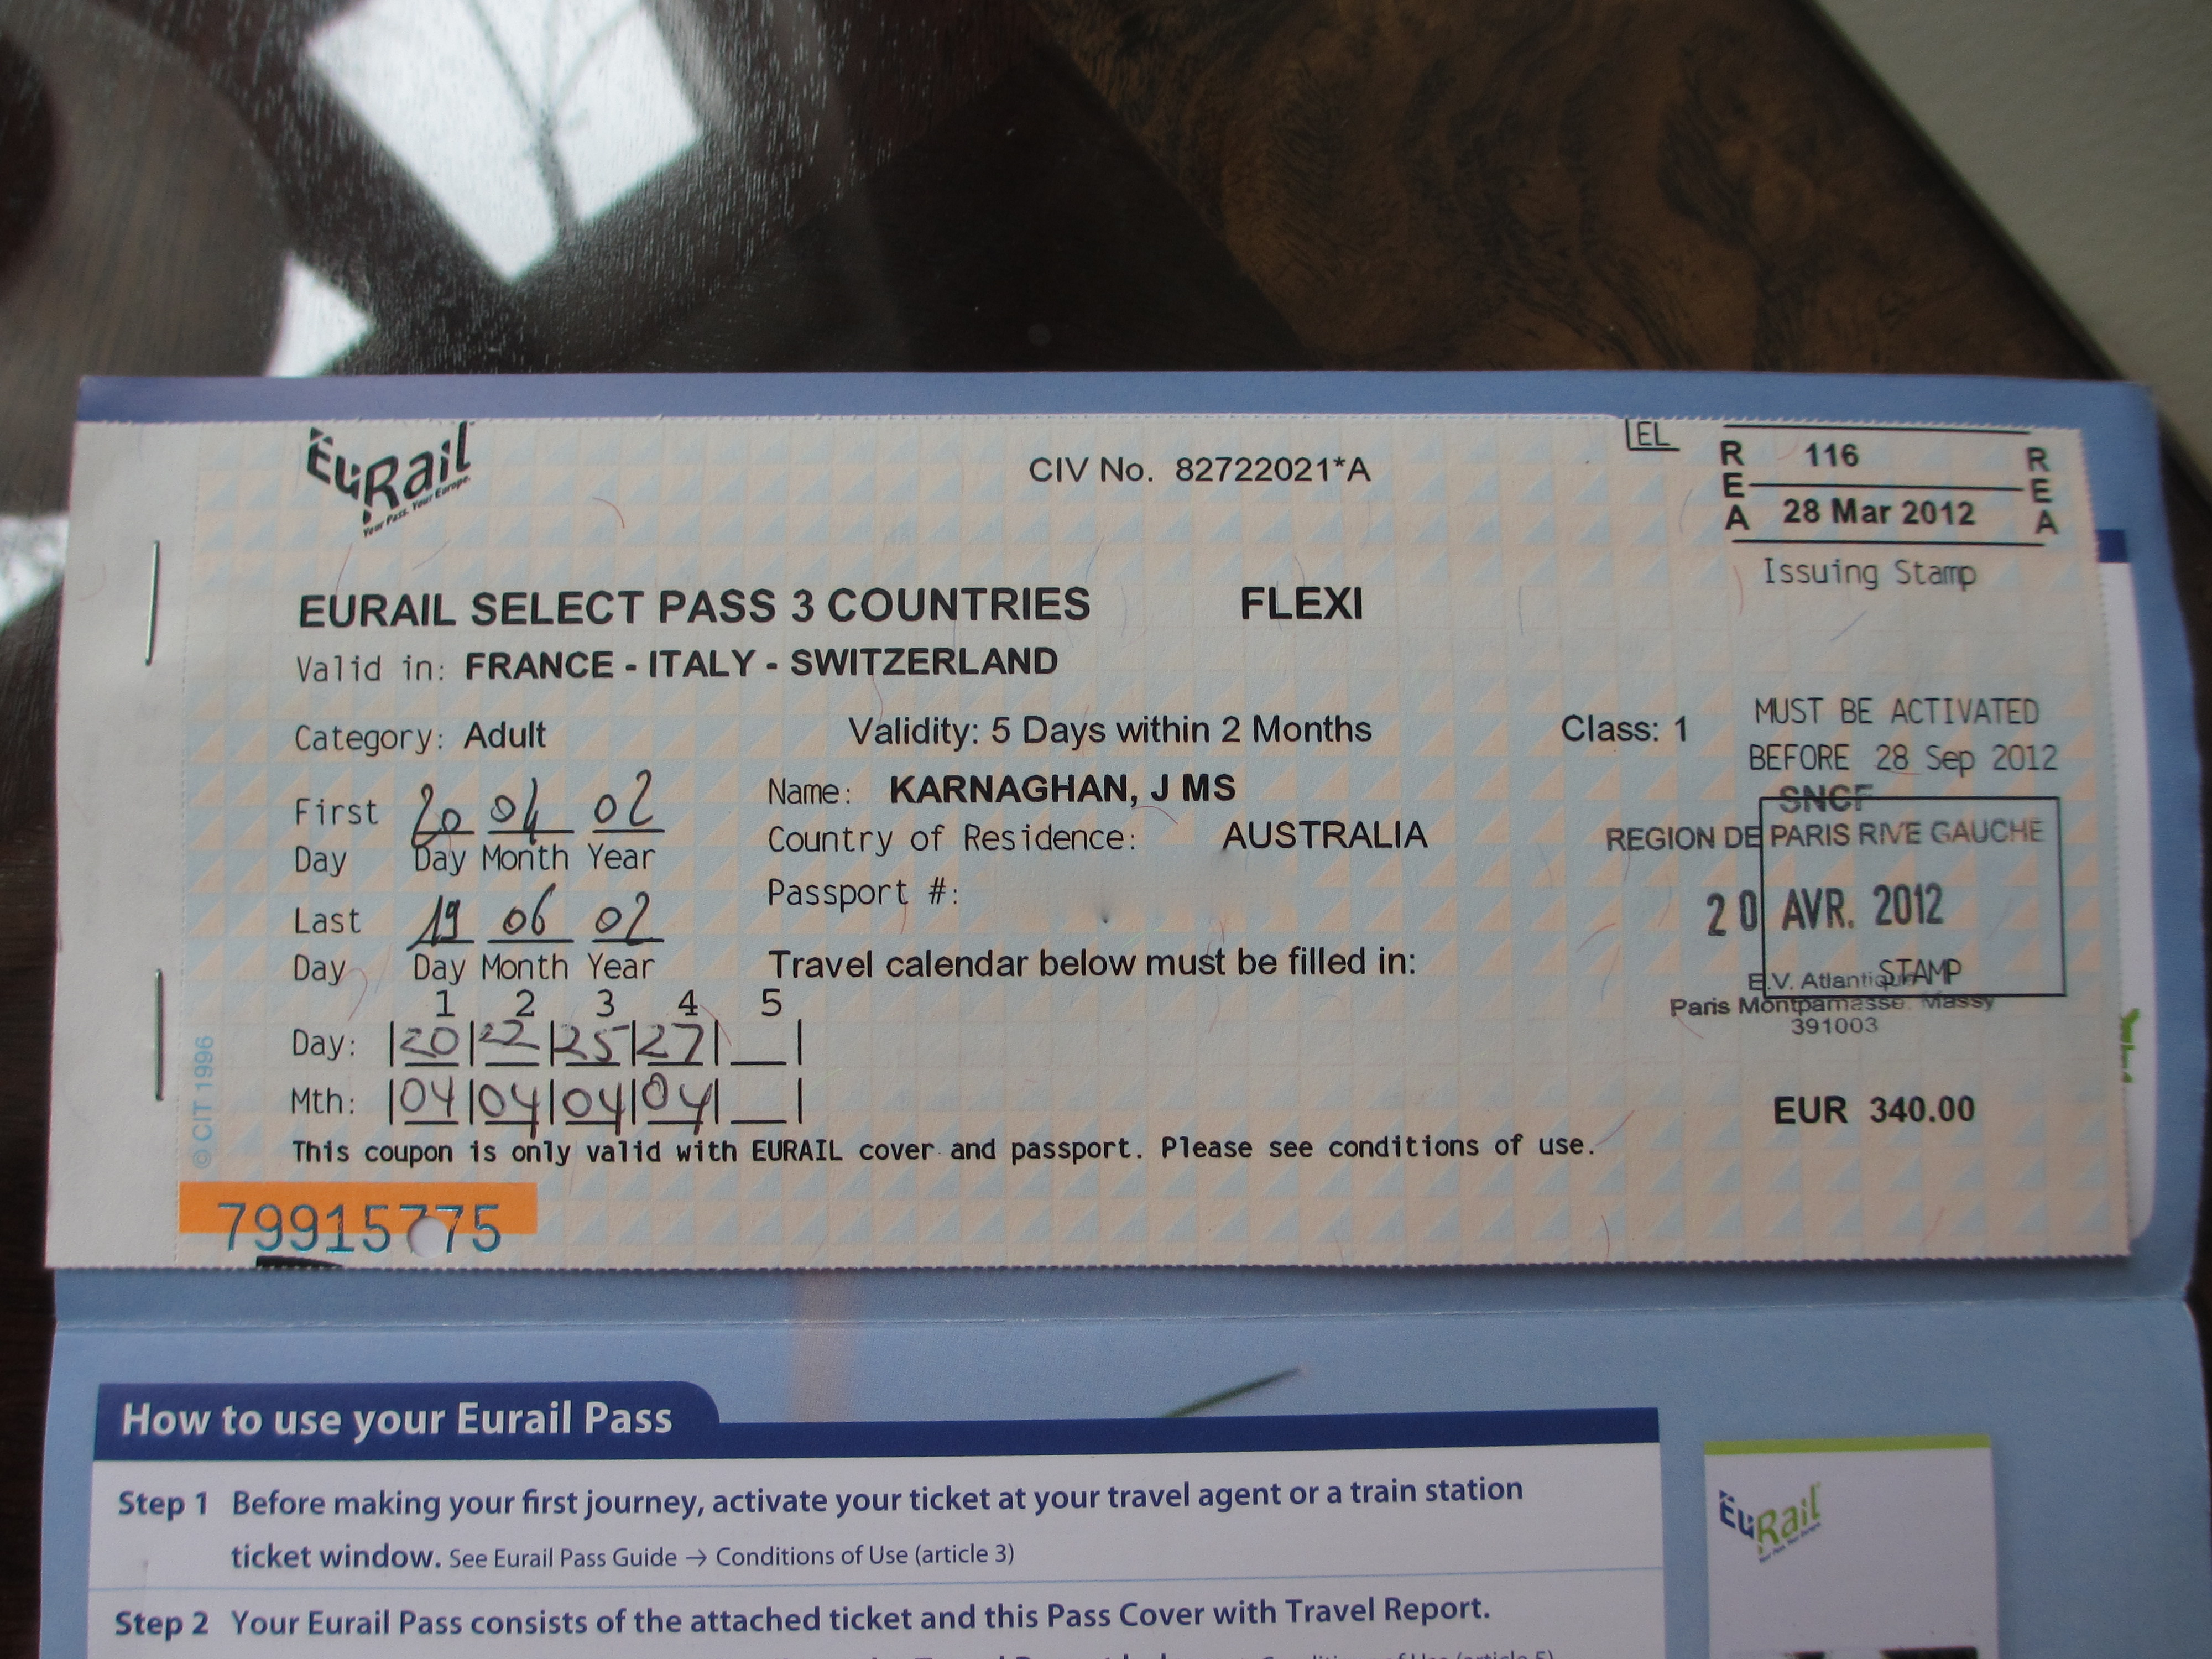 eurail pass 101 part 2 how to use your eurail pass rh frugalfirstclasstravel wordpress com Eurail Passes for Seniors Eurail Pass Discount